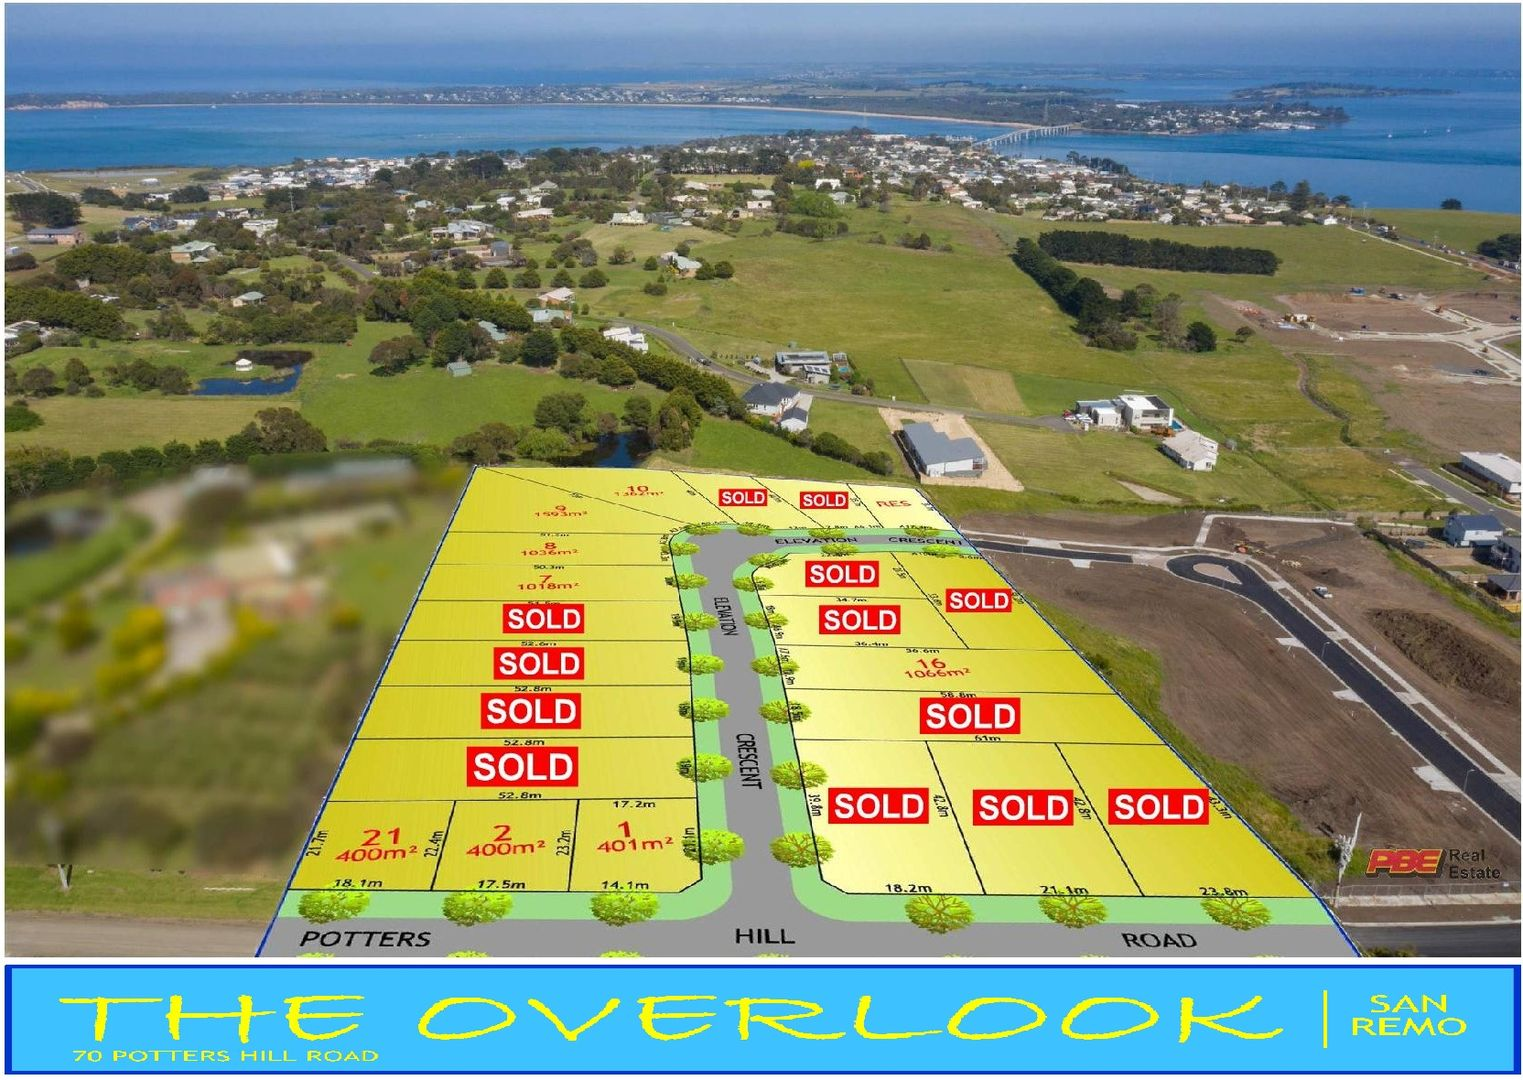 Lot 21/70 Potters Hill Road, San Remo VIC 3925, Image 0